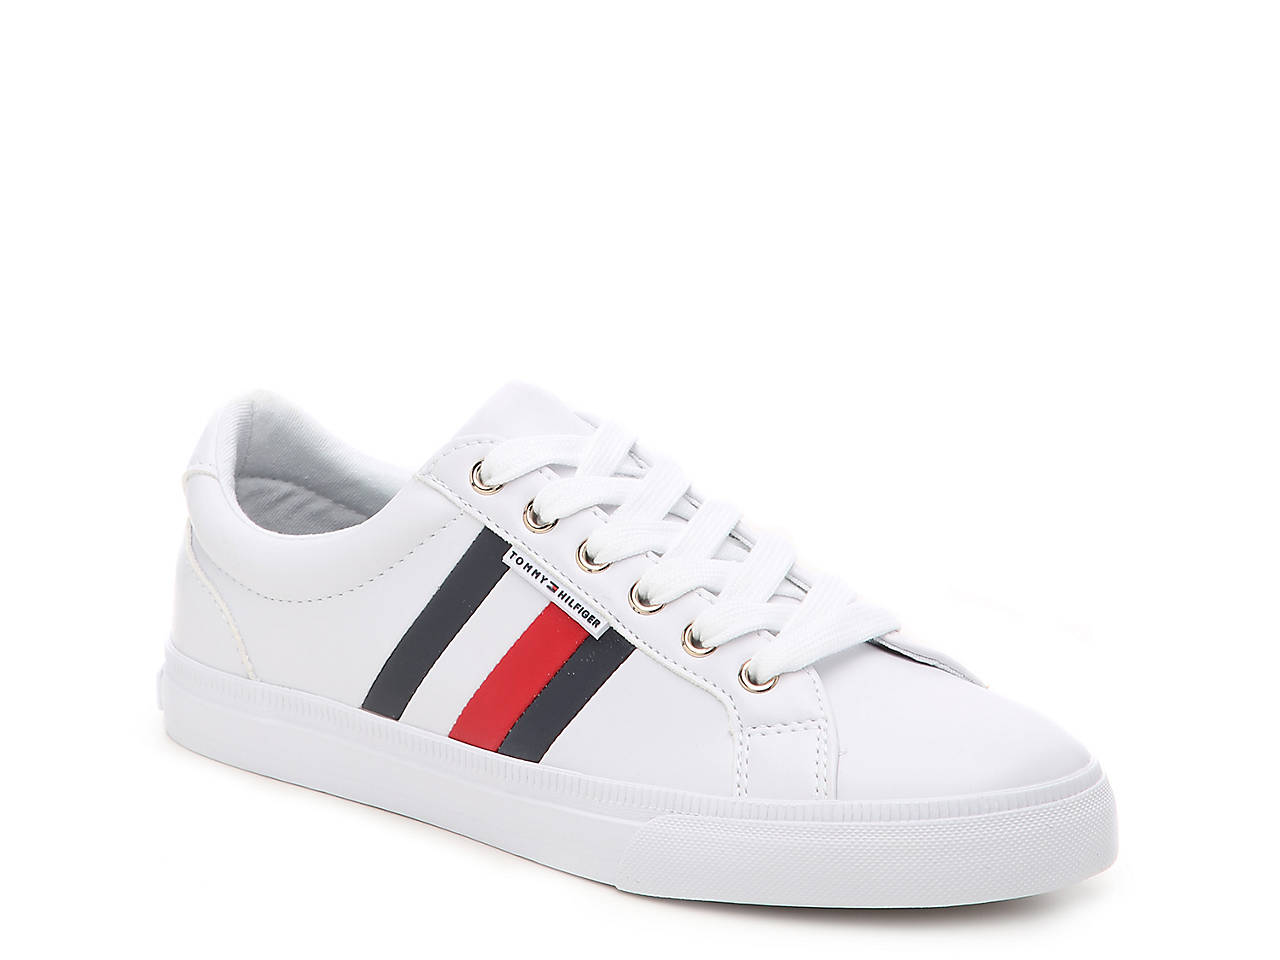 92e587f2c15b Tommy Hilfiger Lightz Sneaker Women s Shoes